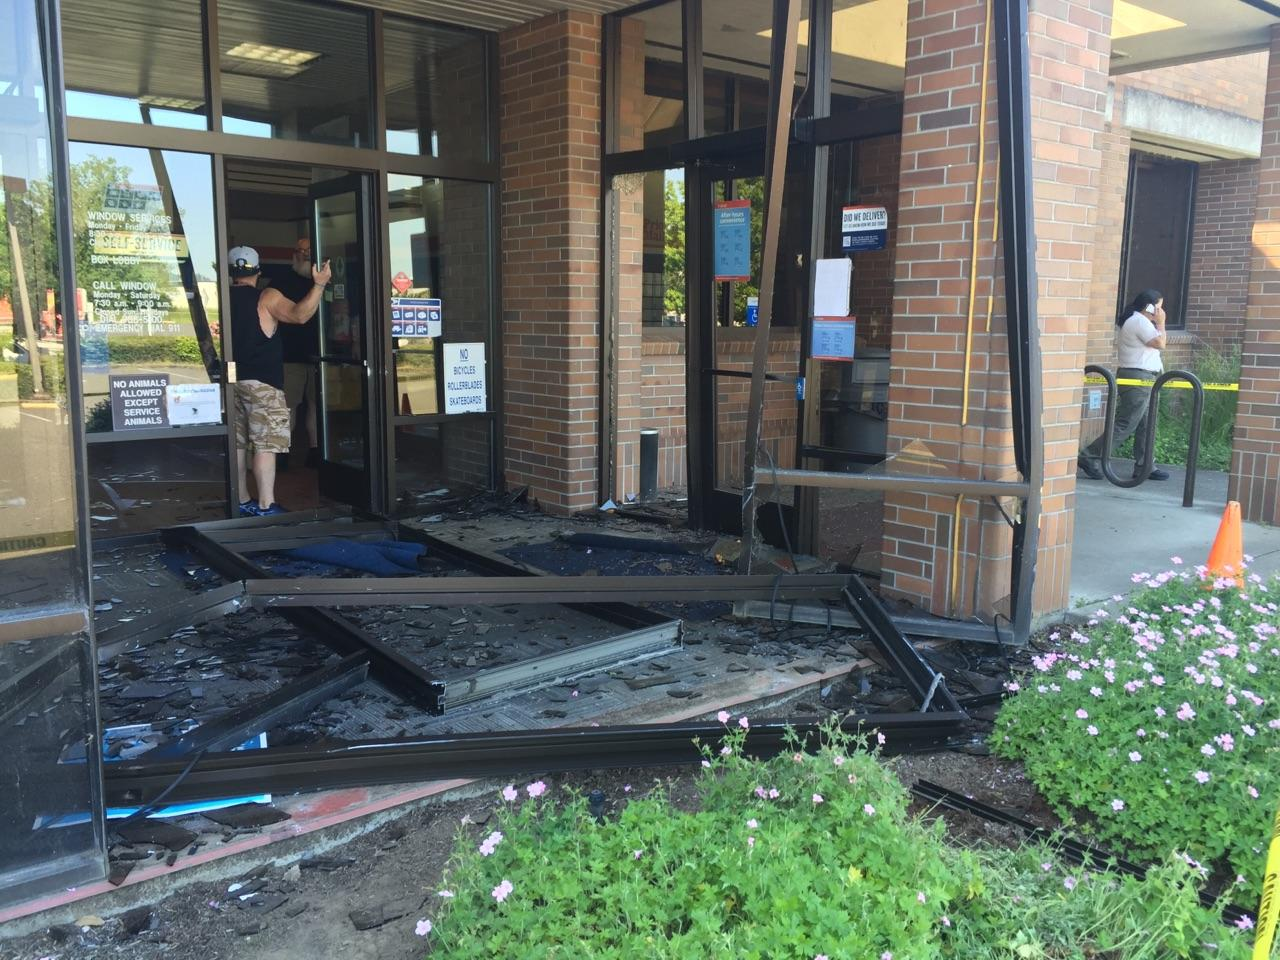 Police say a vehicle drove into the post office on Tyinn Street in west Eugene Tuesday afternoon. The vehicle then backed out of the building and struck another vehicle, they say. (SBG photo)